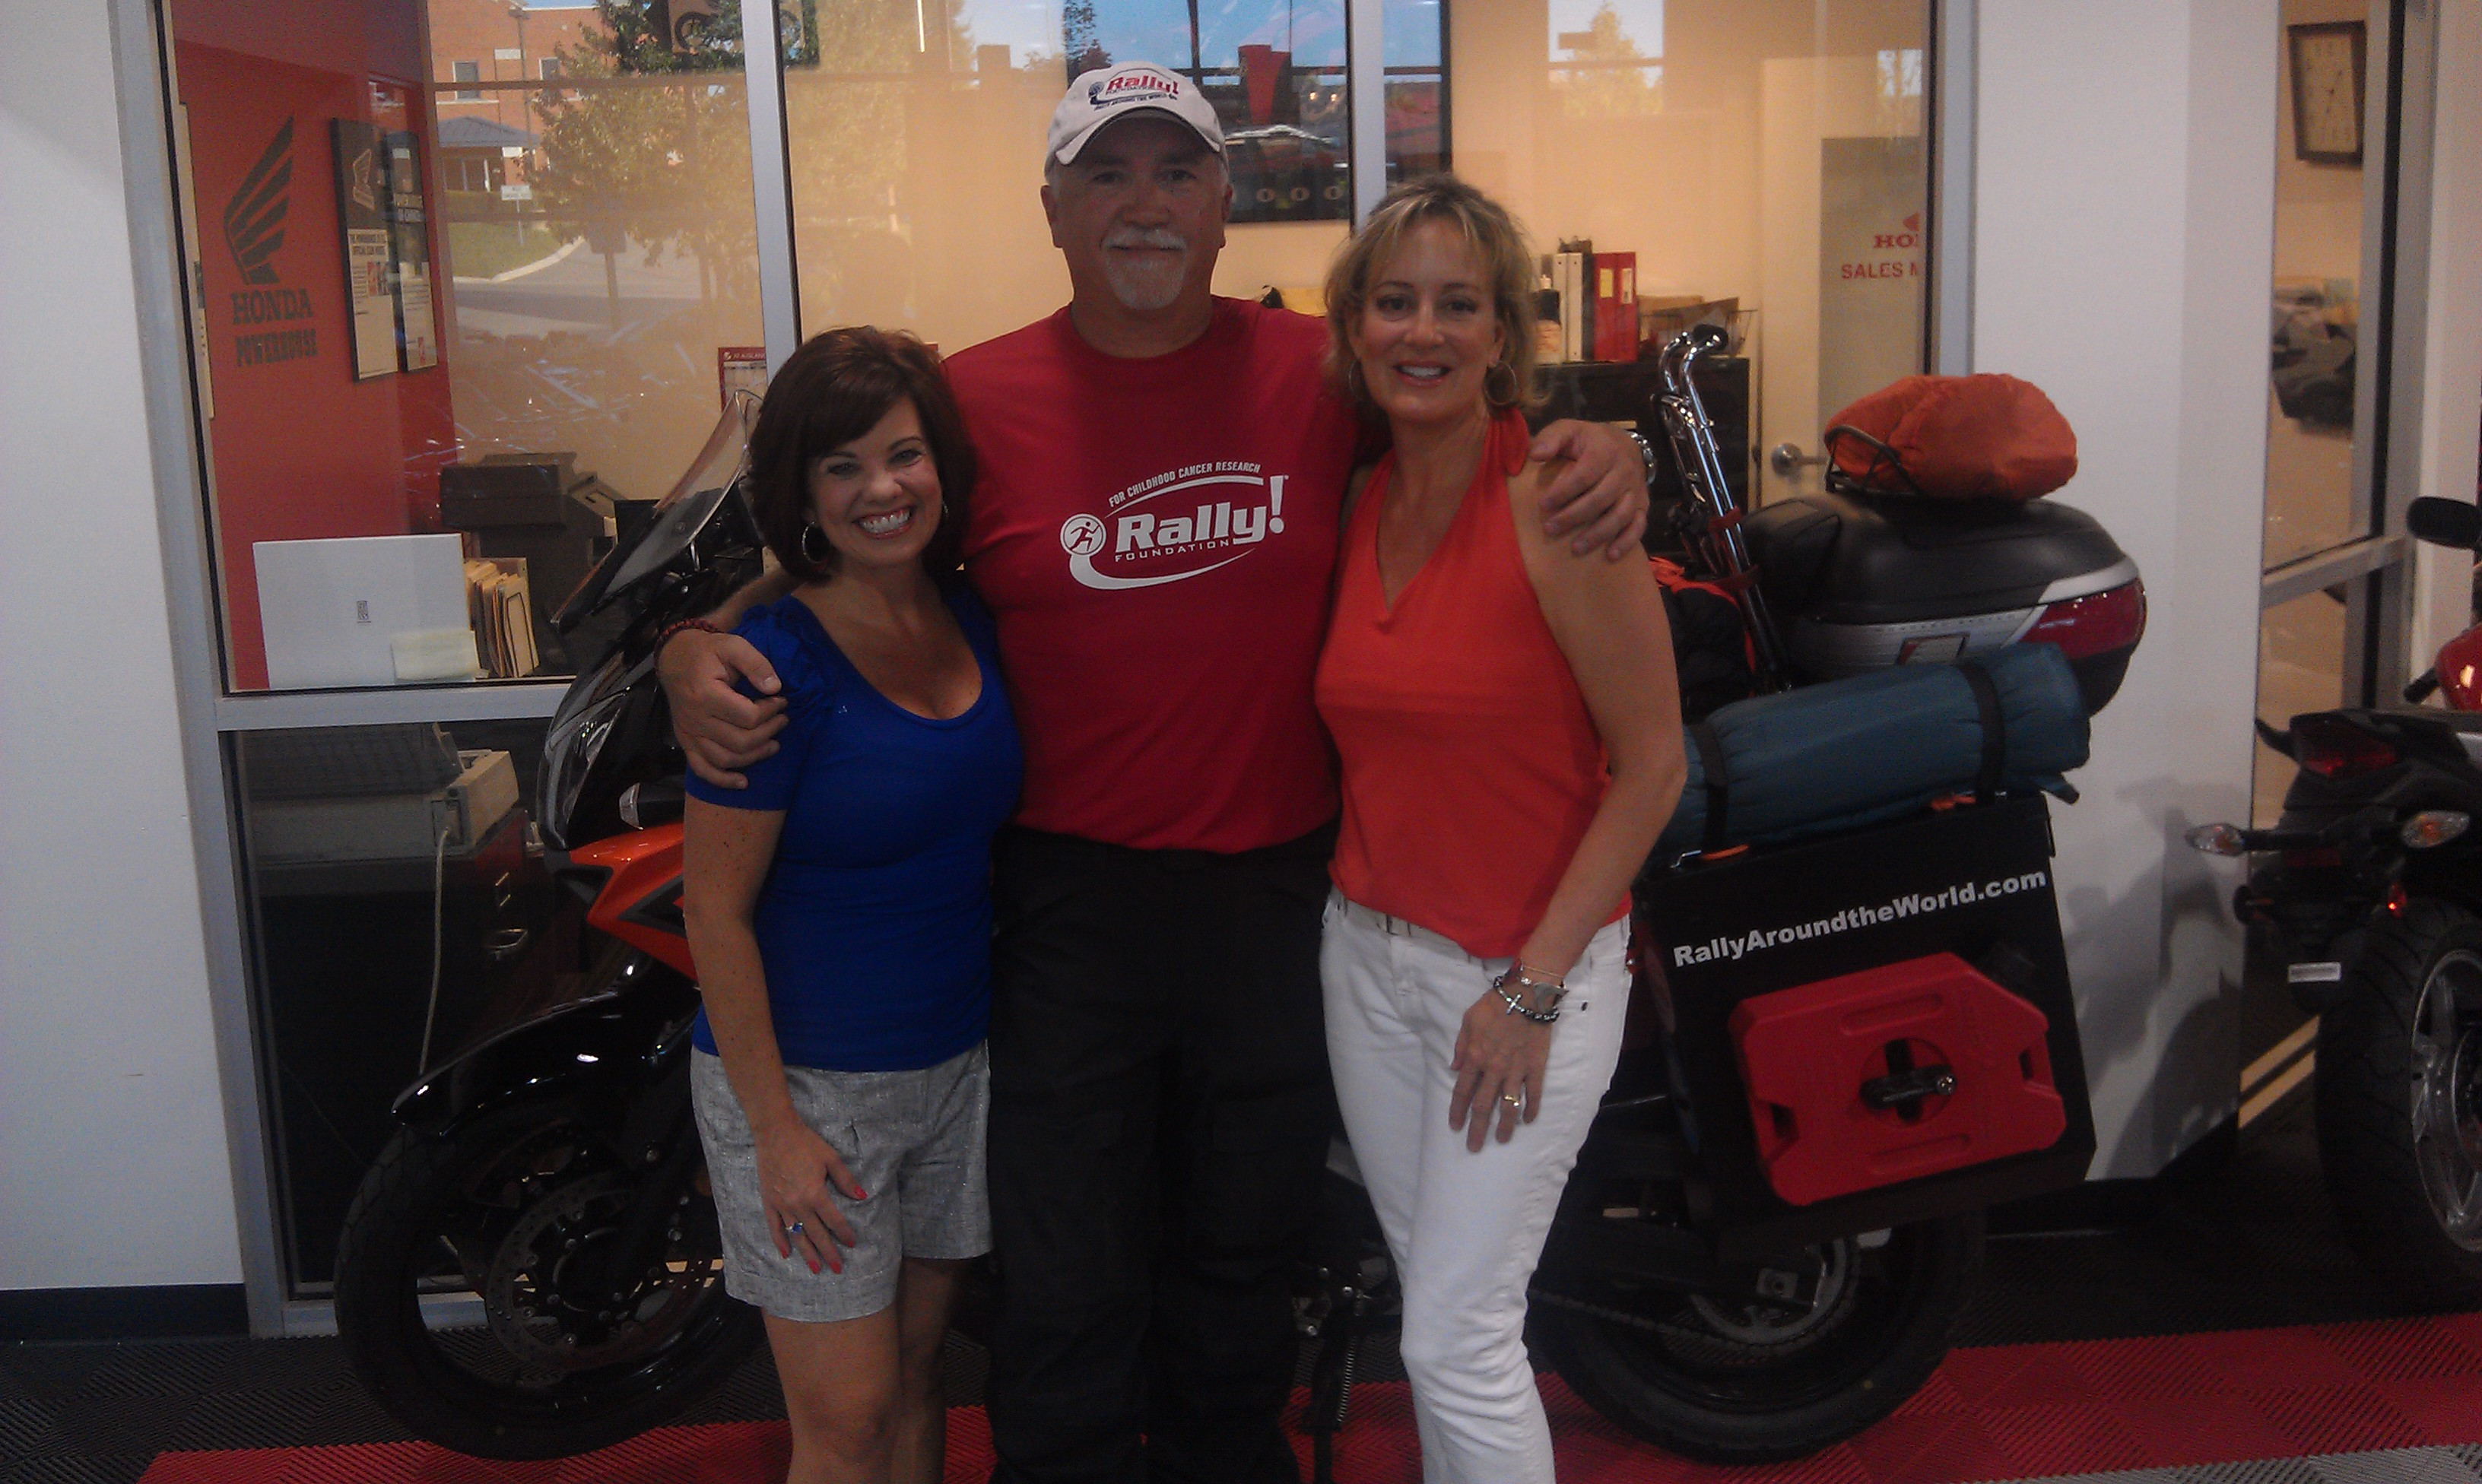 Cool Springs Powersports Rally Around The World